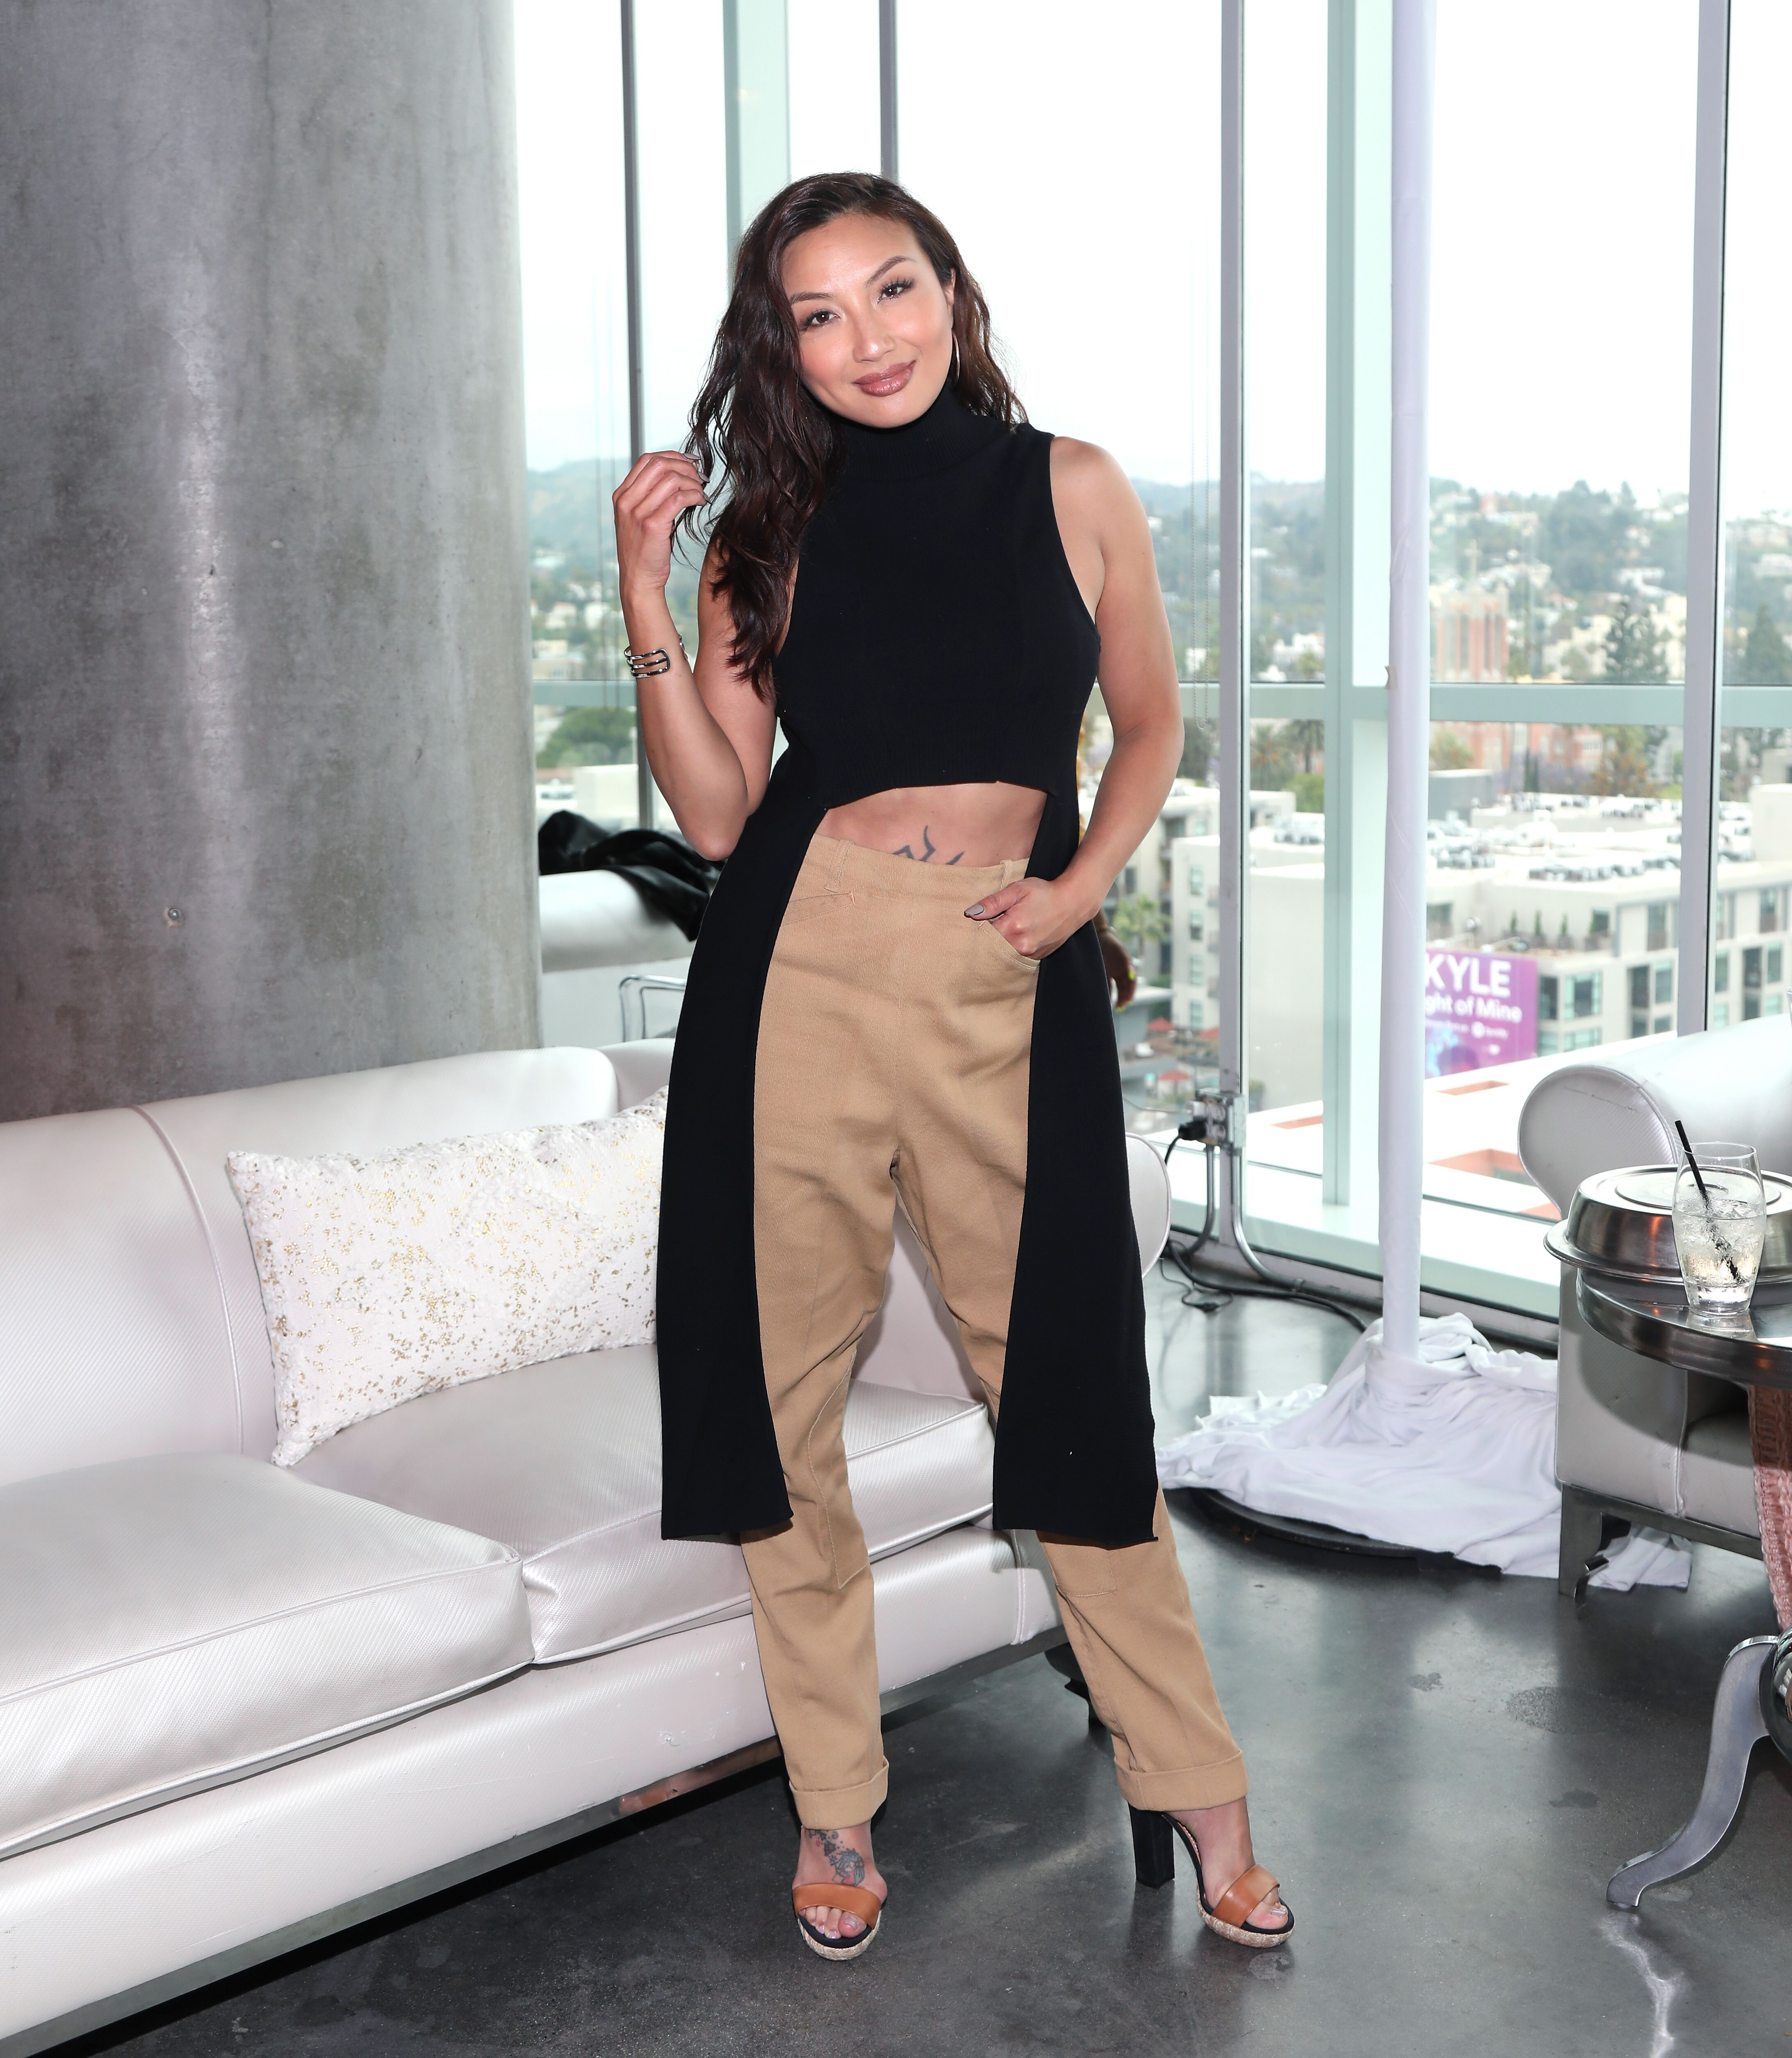 Jeannie Mai attends the CIROC Empowered Women's Brunch at the W Hollywood on May 21, 2018 | Photo: Getty Images